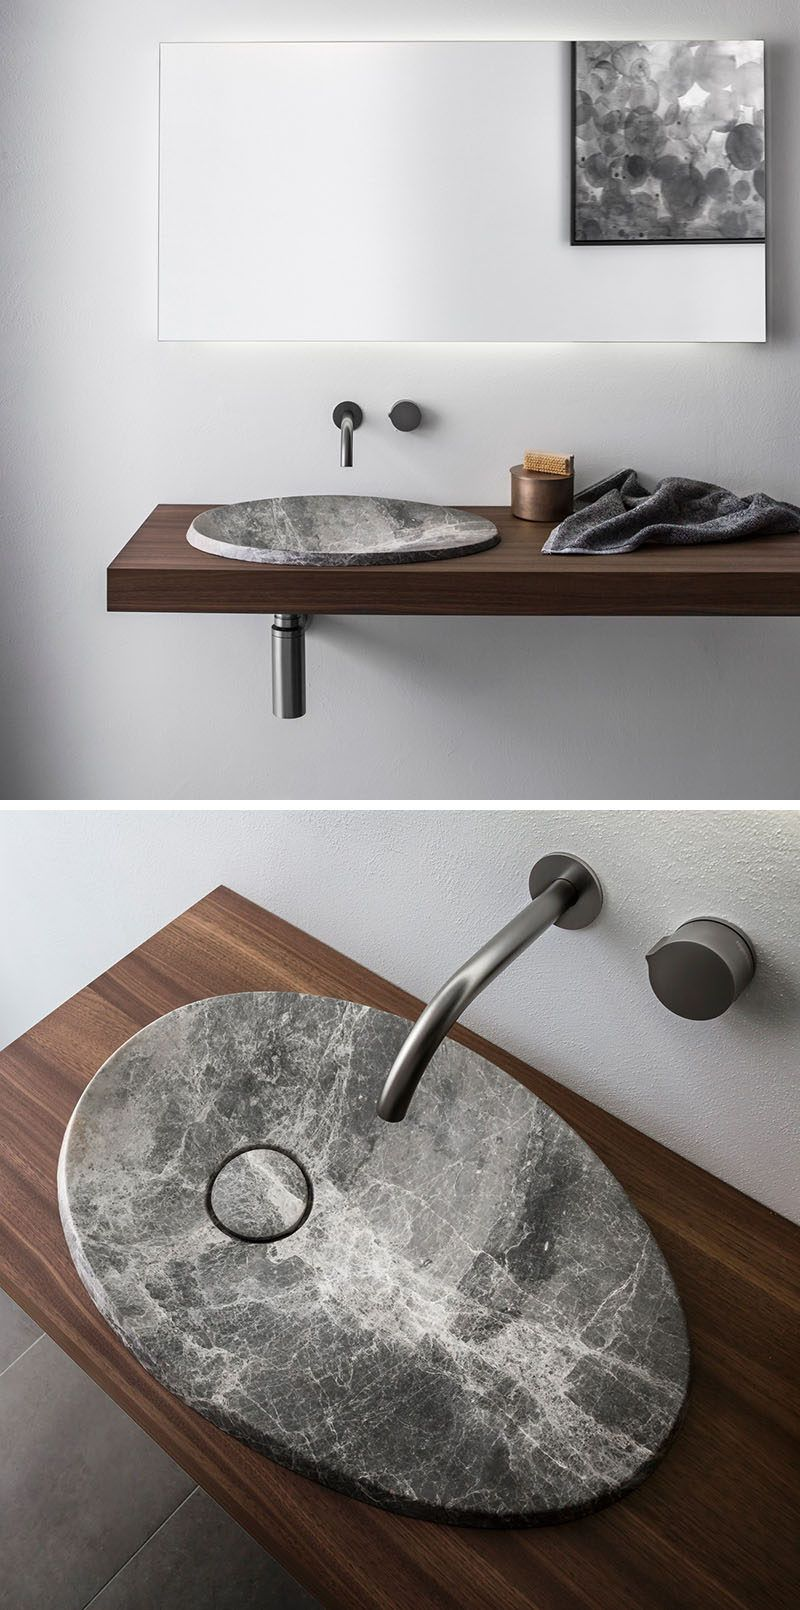 This modern bathroom sink made from natural stone sits on a floating wood vanity and has a simple stainless steel faucet